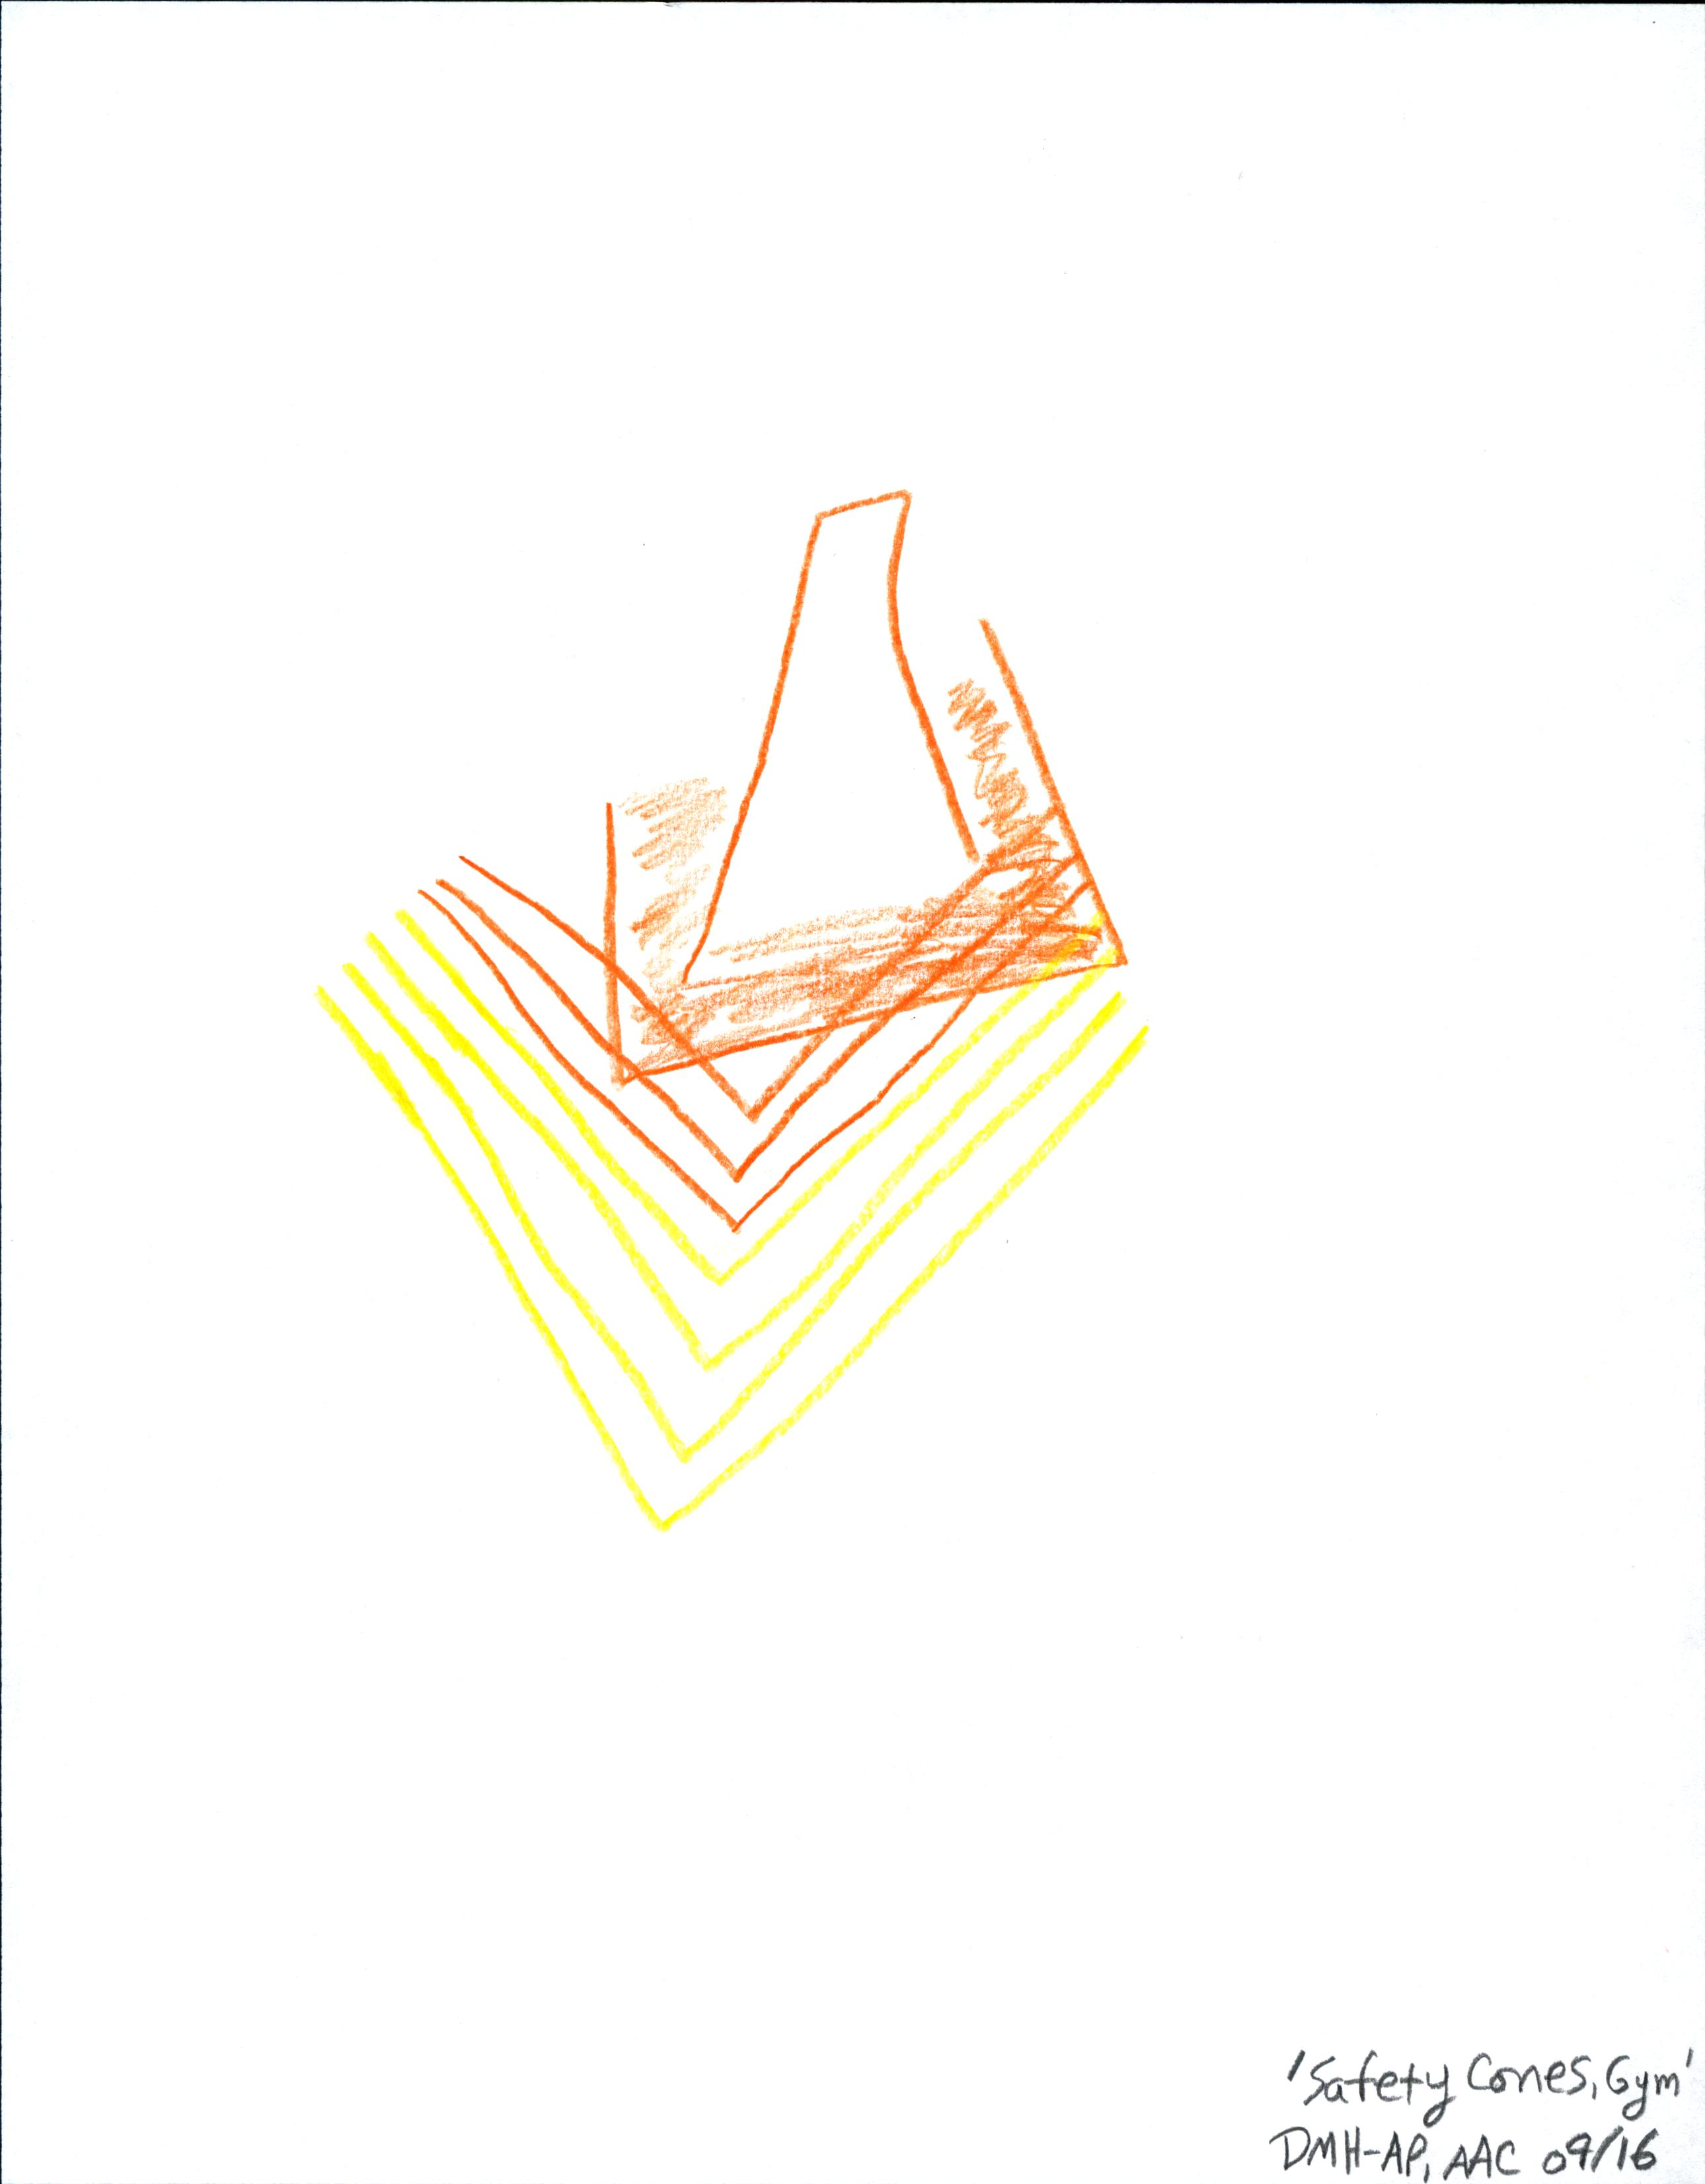 Safety Cone, Gym — 8 1/2″ X 11″, colored pencil/crayon on printer paper